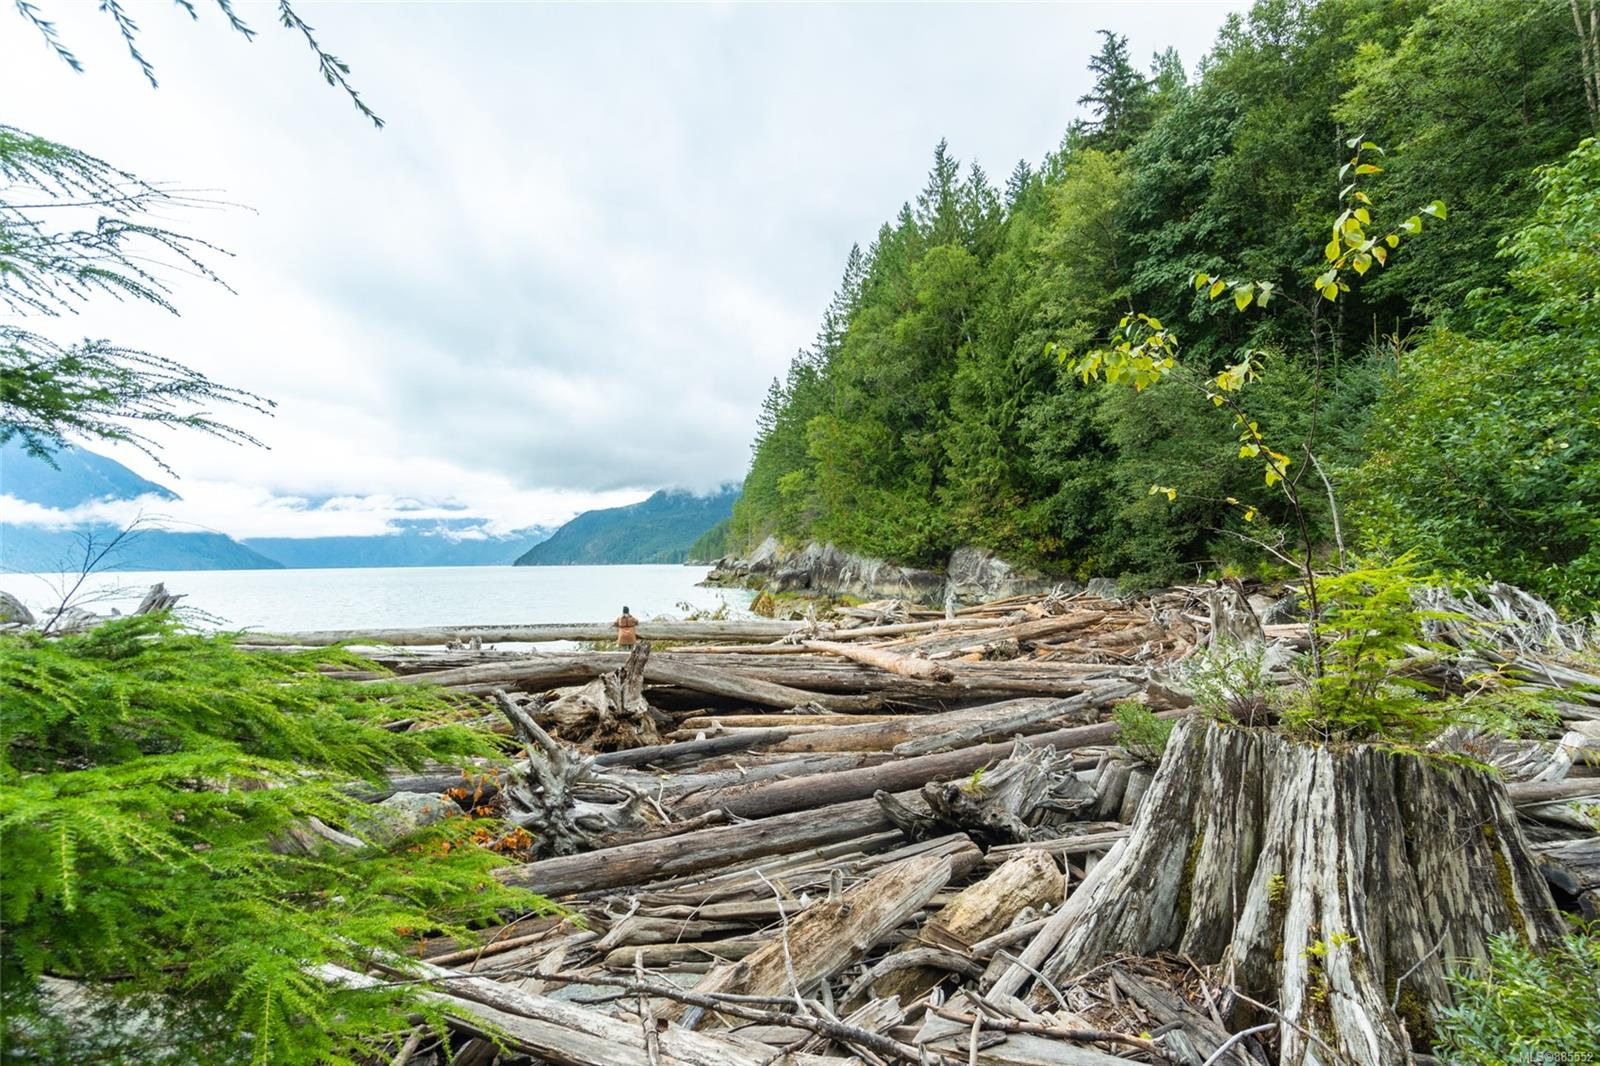 DL 2515 Bute Inlet - Isl Small Islands (Campbell River Area) Land for sale(885552) #22